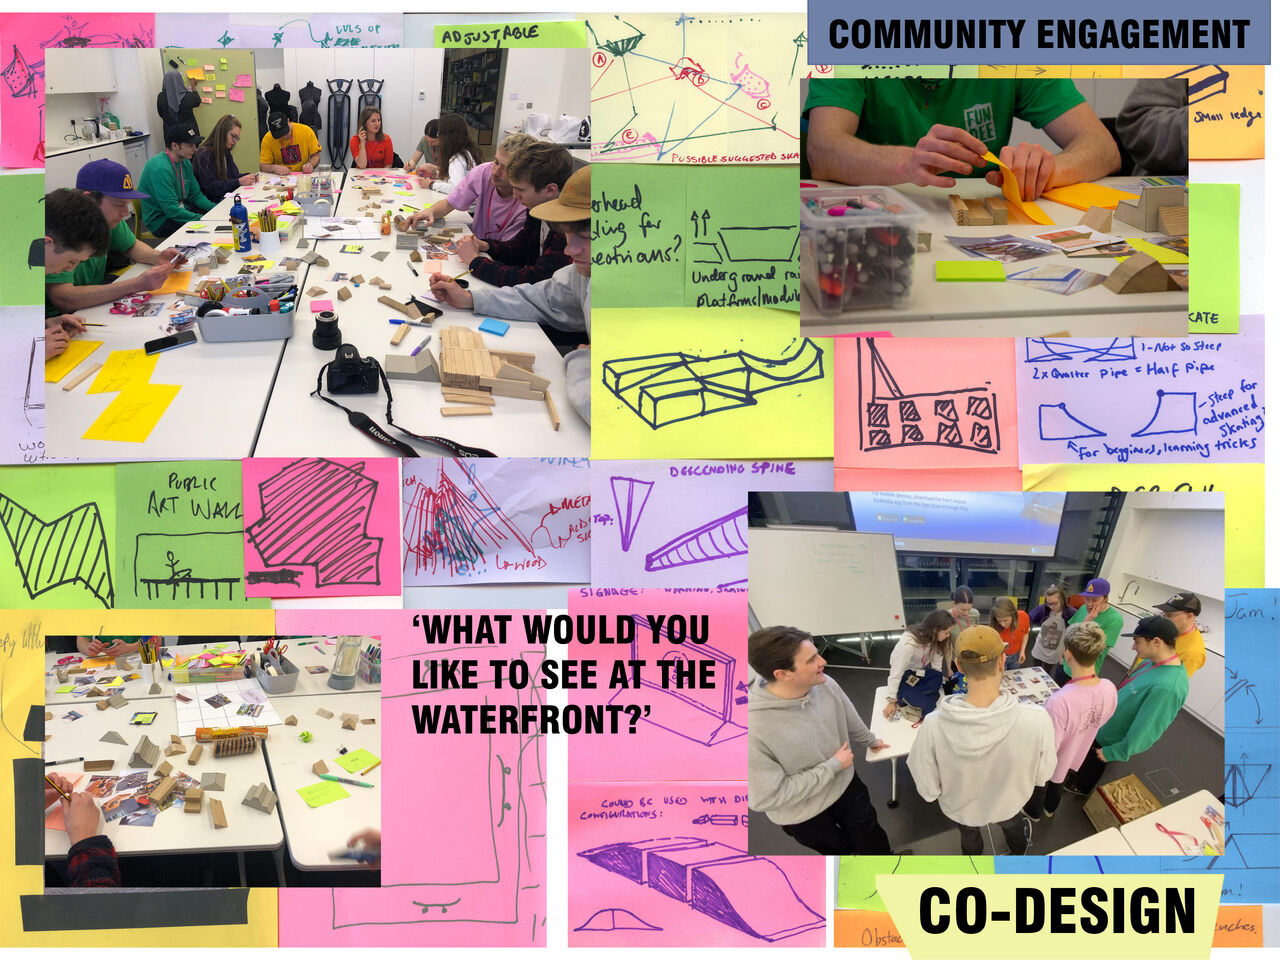 A collage of different photos showing a focus group working around tables. The photos are set against a backdrop of post-it notes.